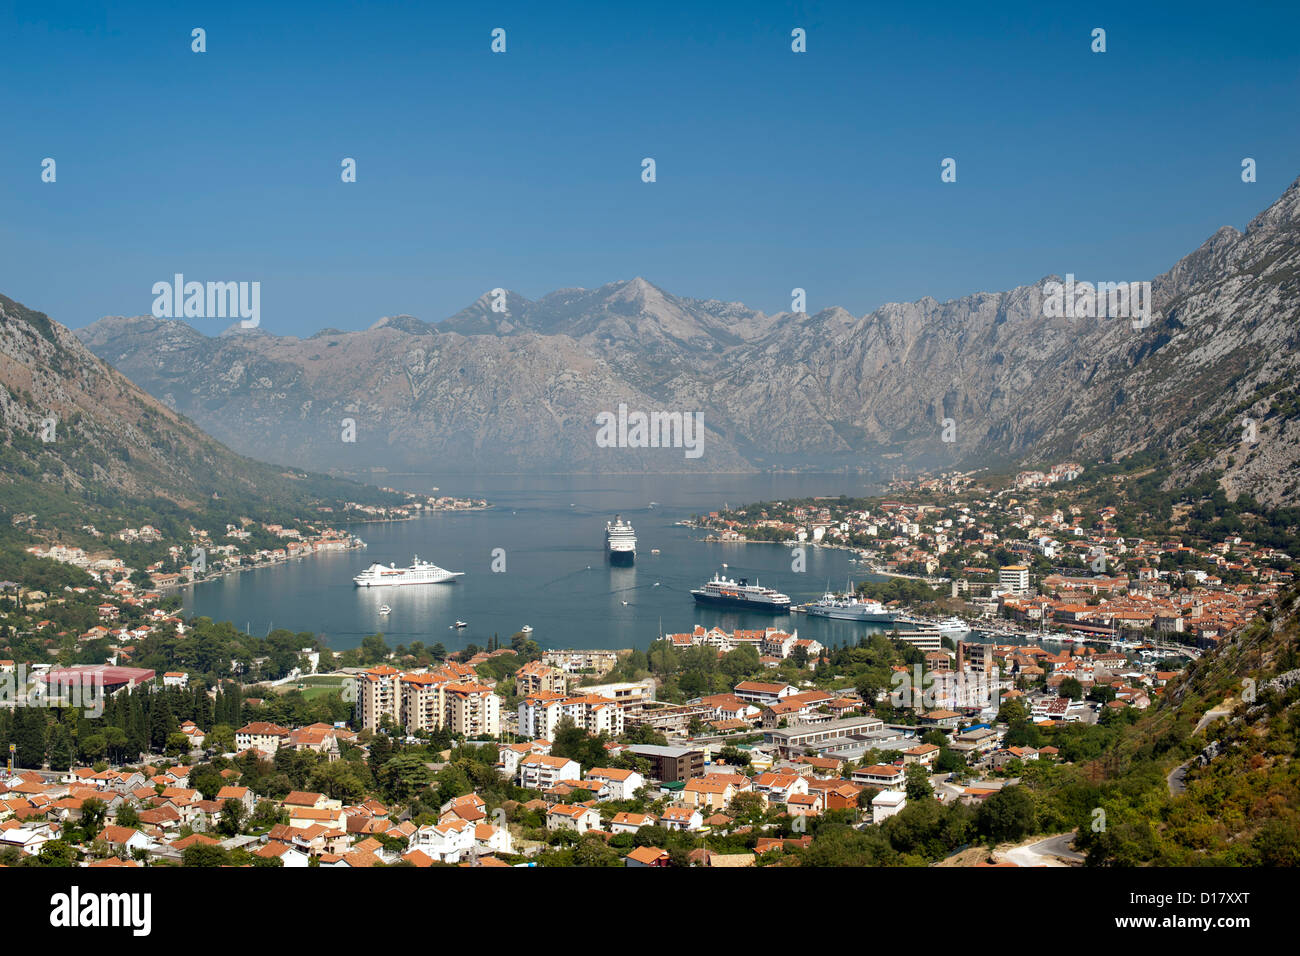 View of Kotor bay and Kotor town in Montenegro. - Stock Image